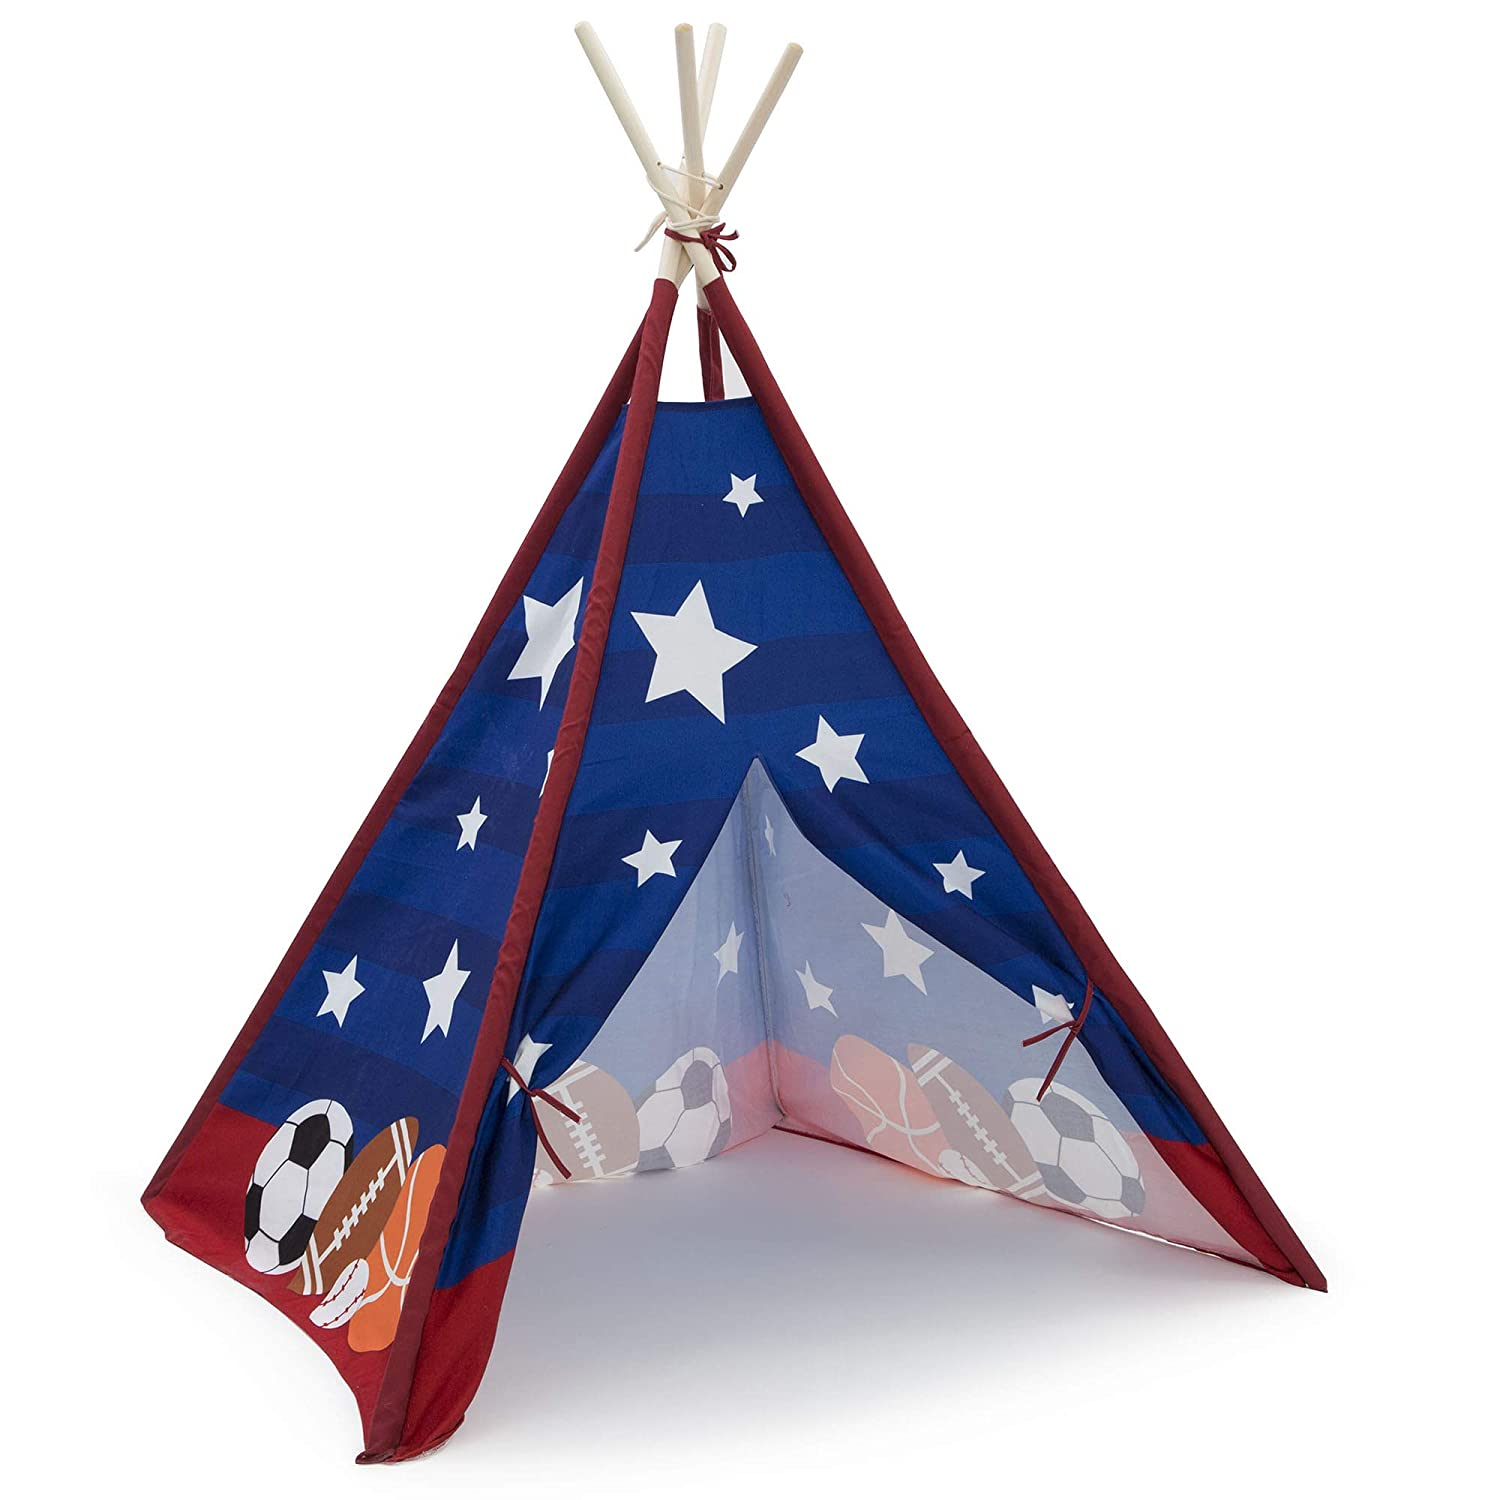 Geometric Squares Delta Children Teepee Play Tent for Kids Cotton Canvas with Wooden Poles